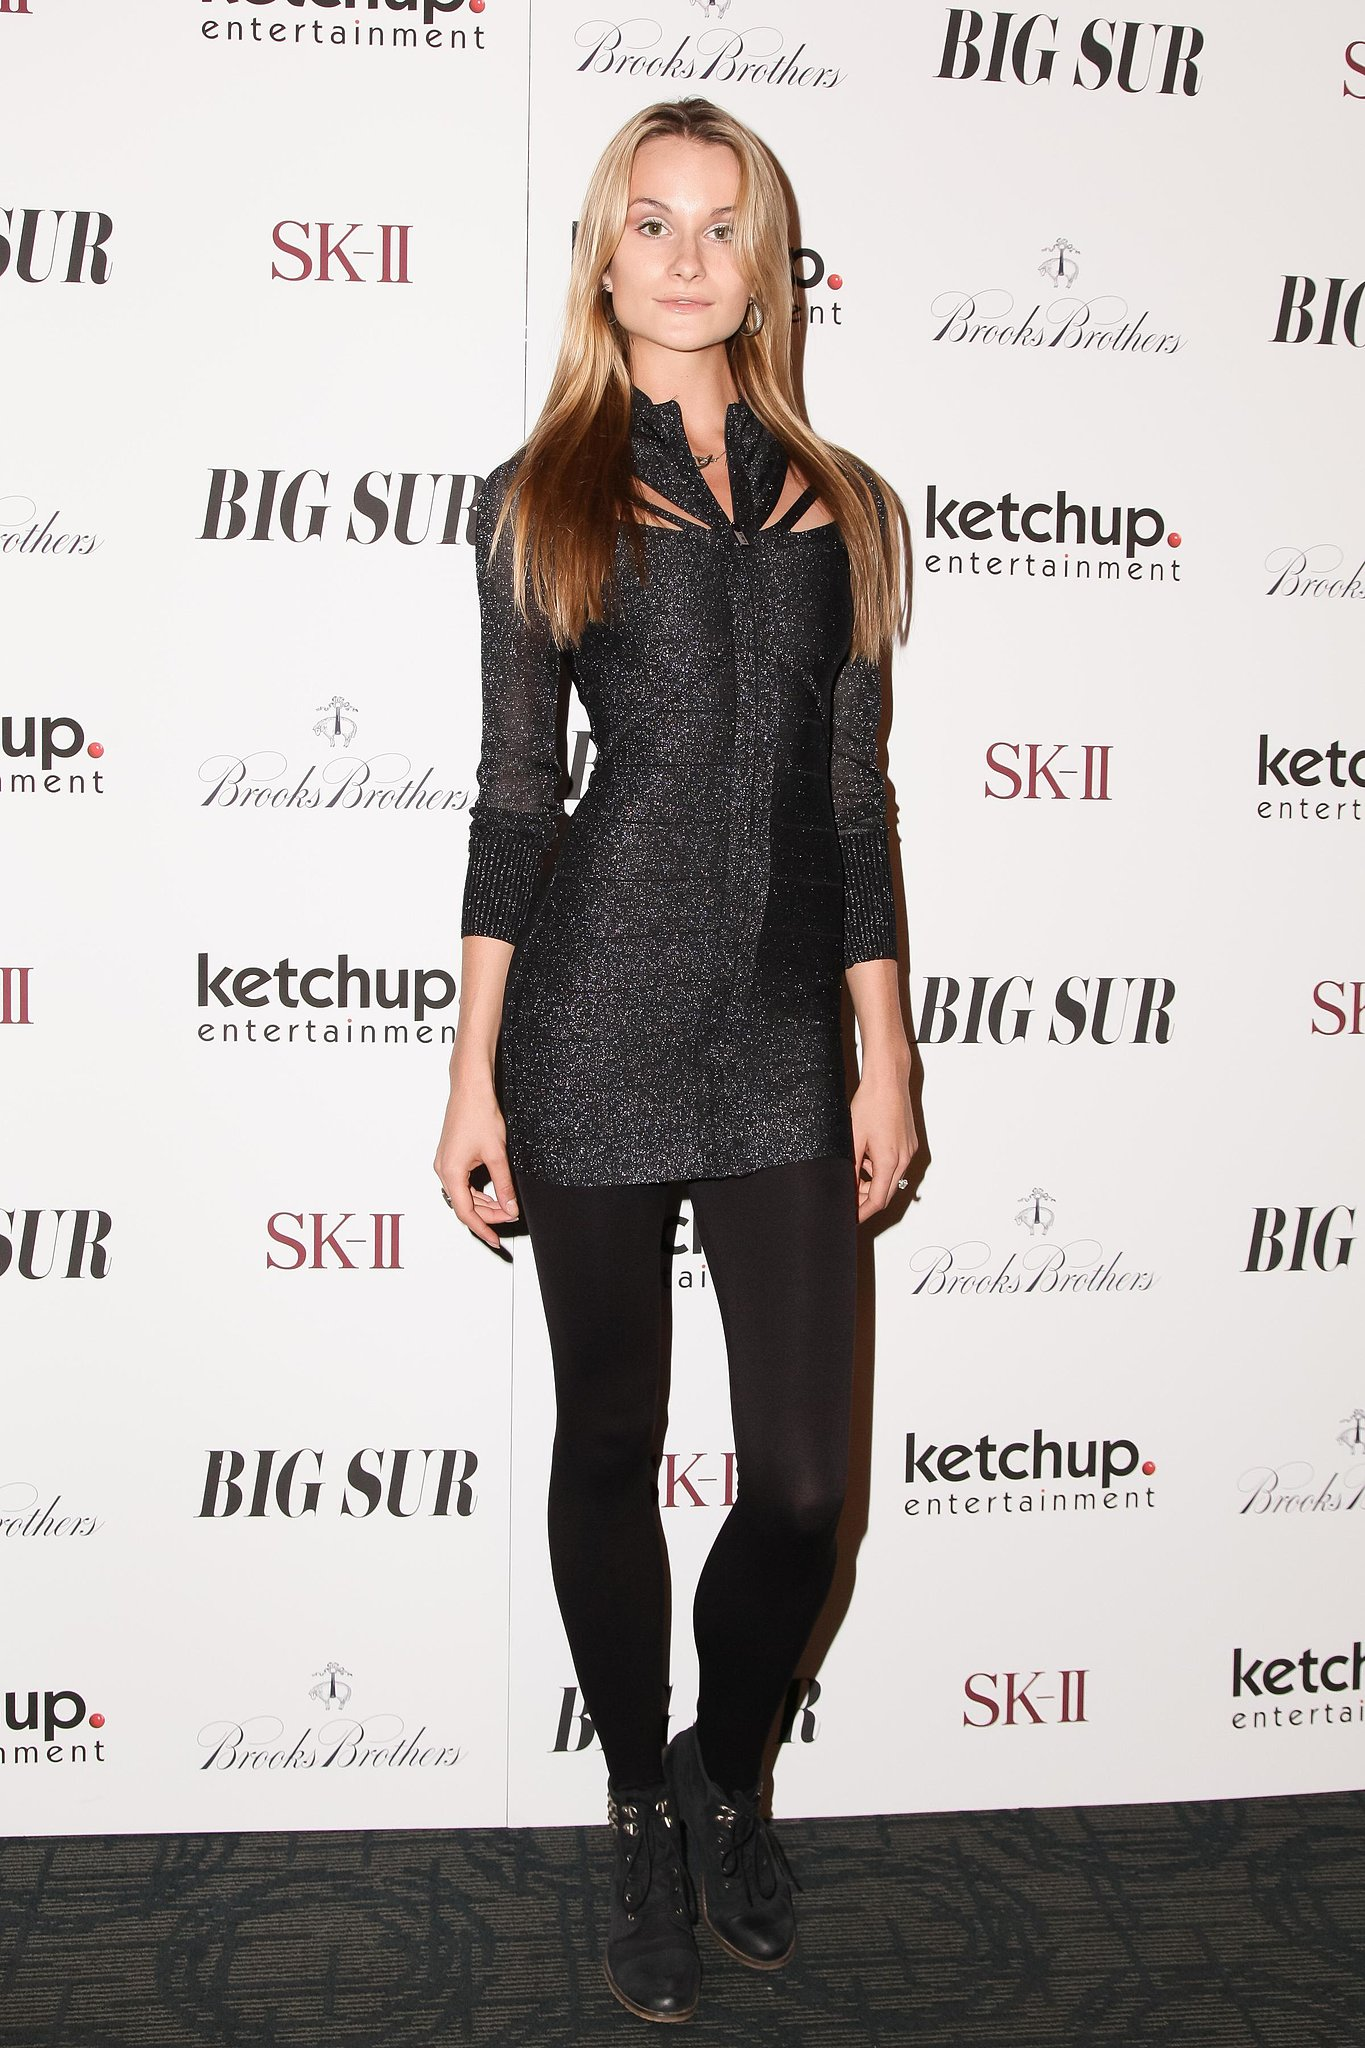 Elena Kurnosova made an impact in her cutout design on the Big Sur carpet.